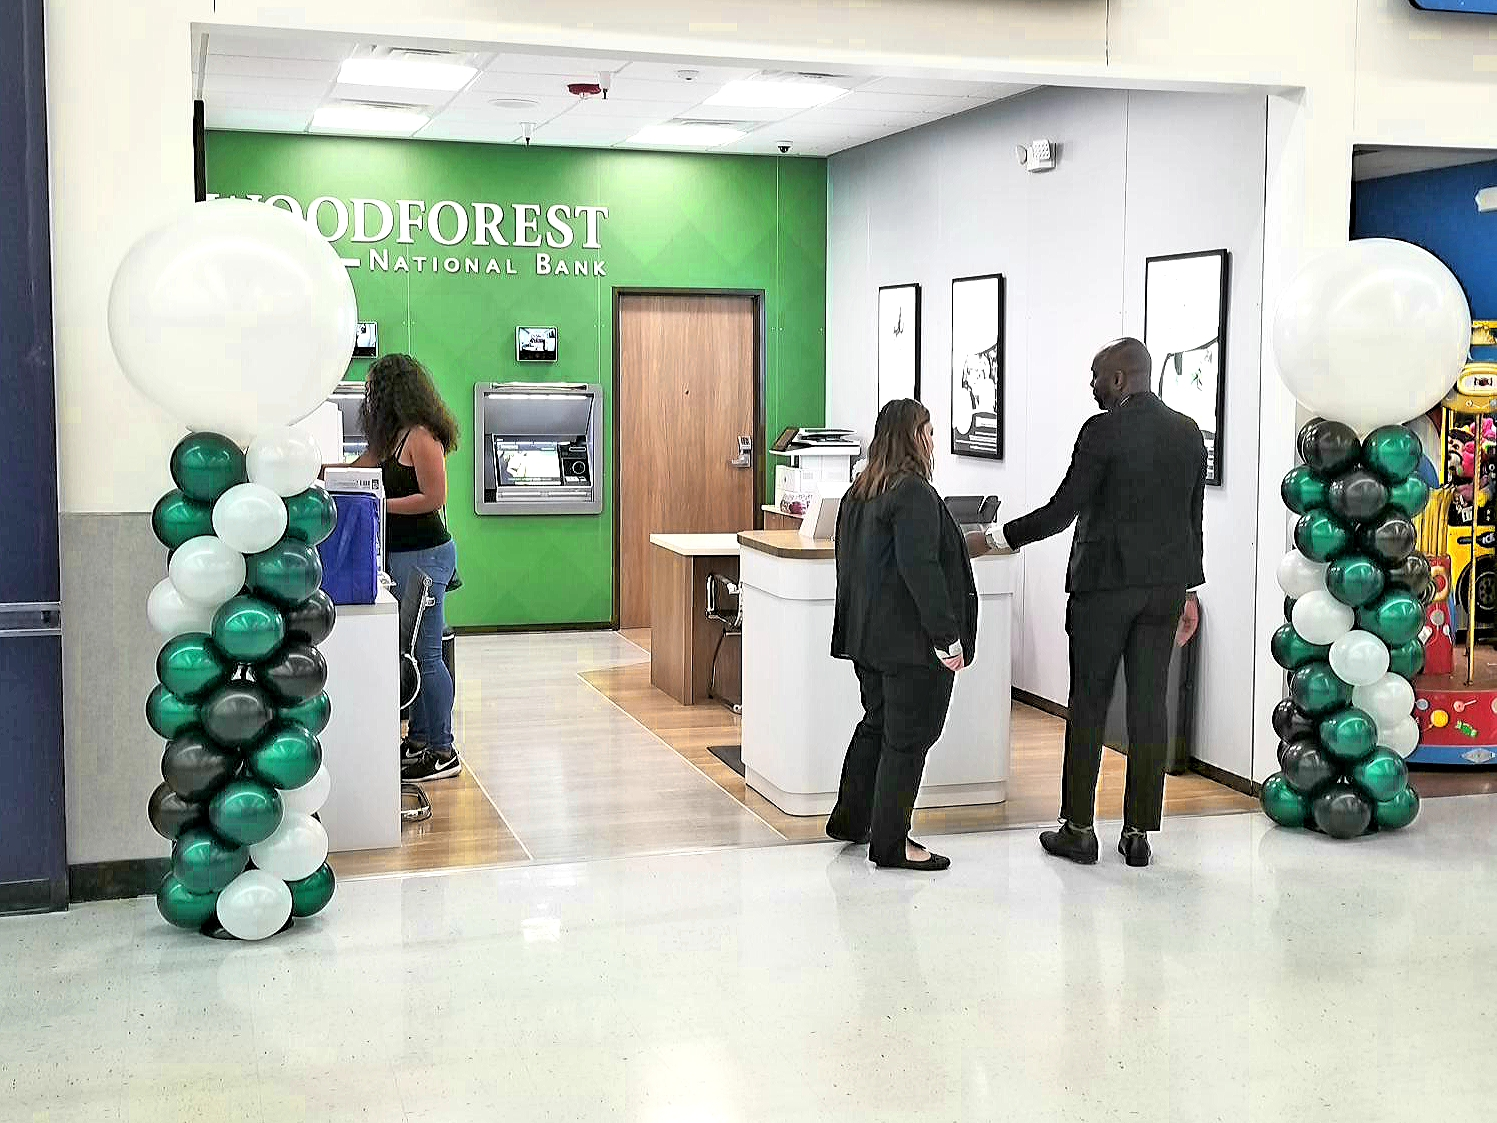 Woodforest bank balloons.jpg